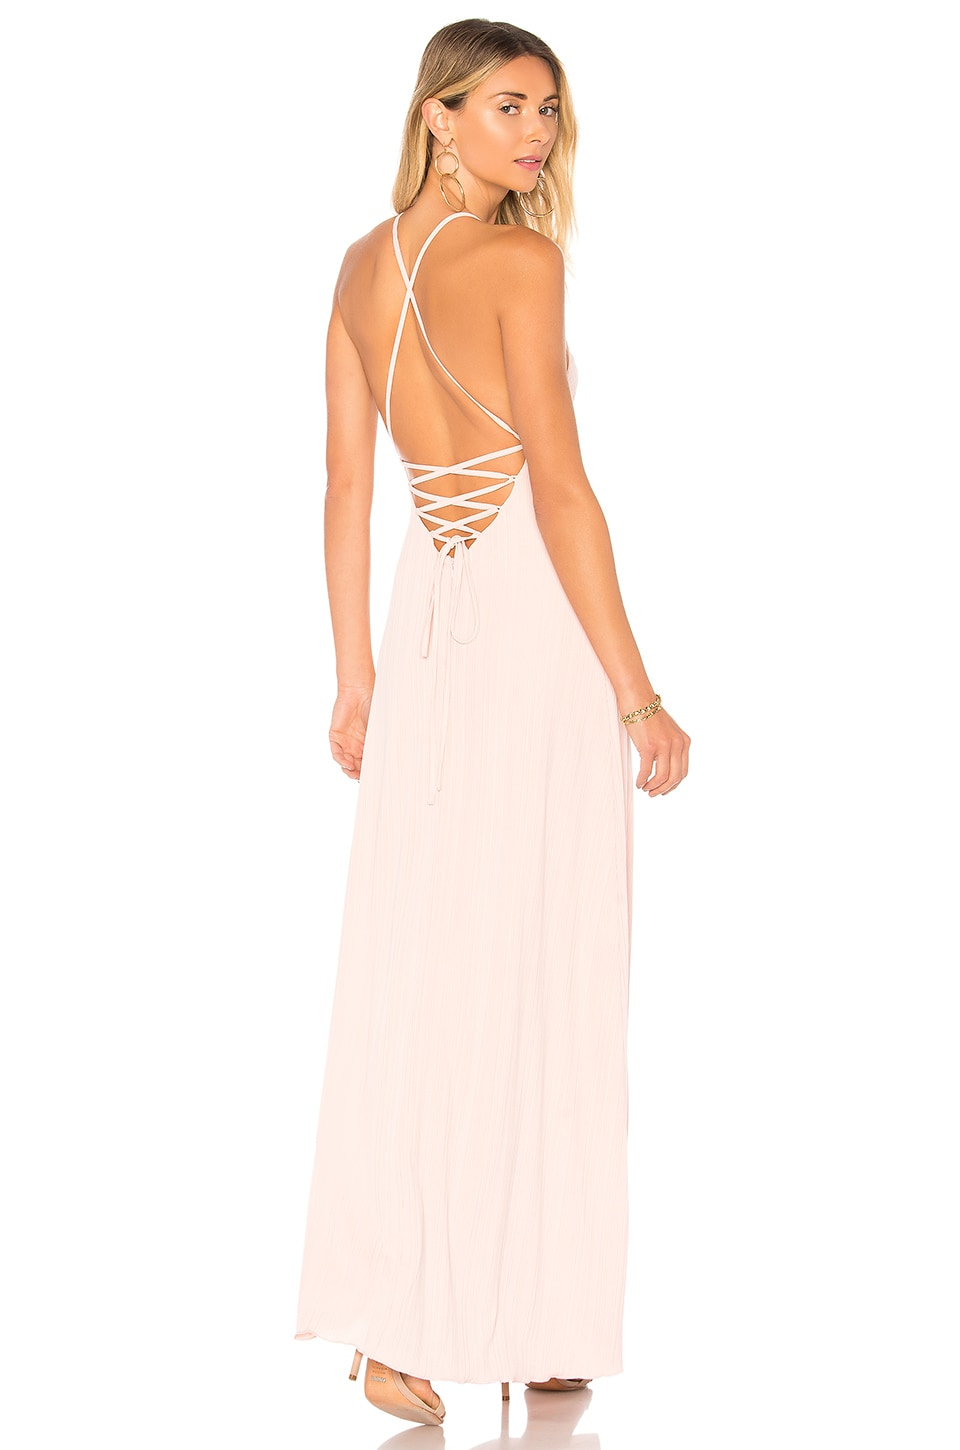 House of Harlow 1960 x REVOLVE Heidi Maxi in Rose Pink